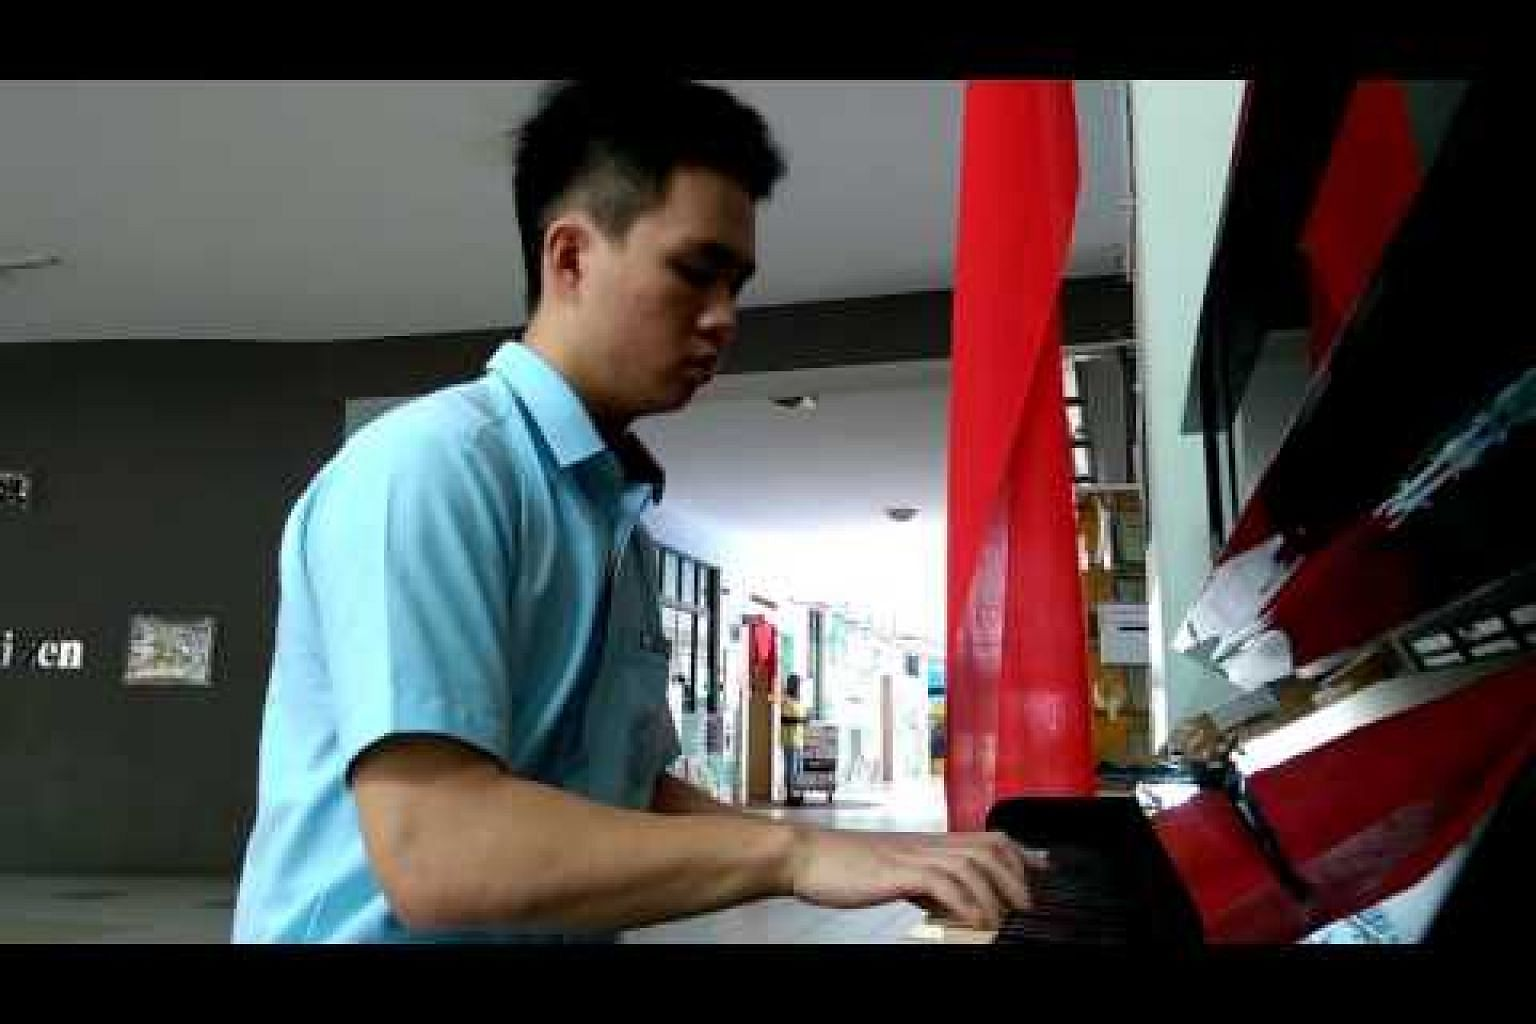 Self-taught pianist Tan Ou Wen playing on the school piano